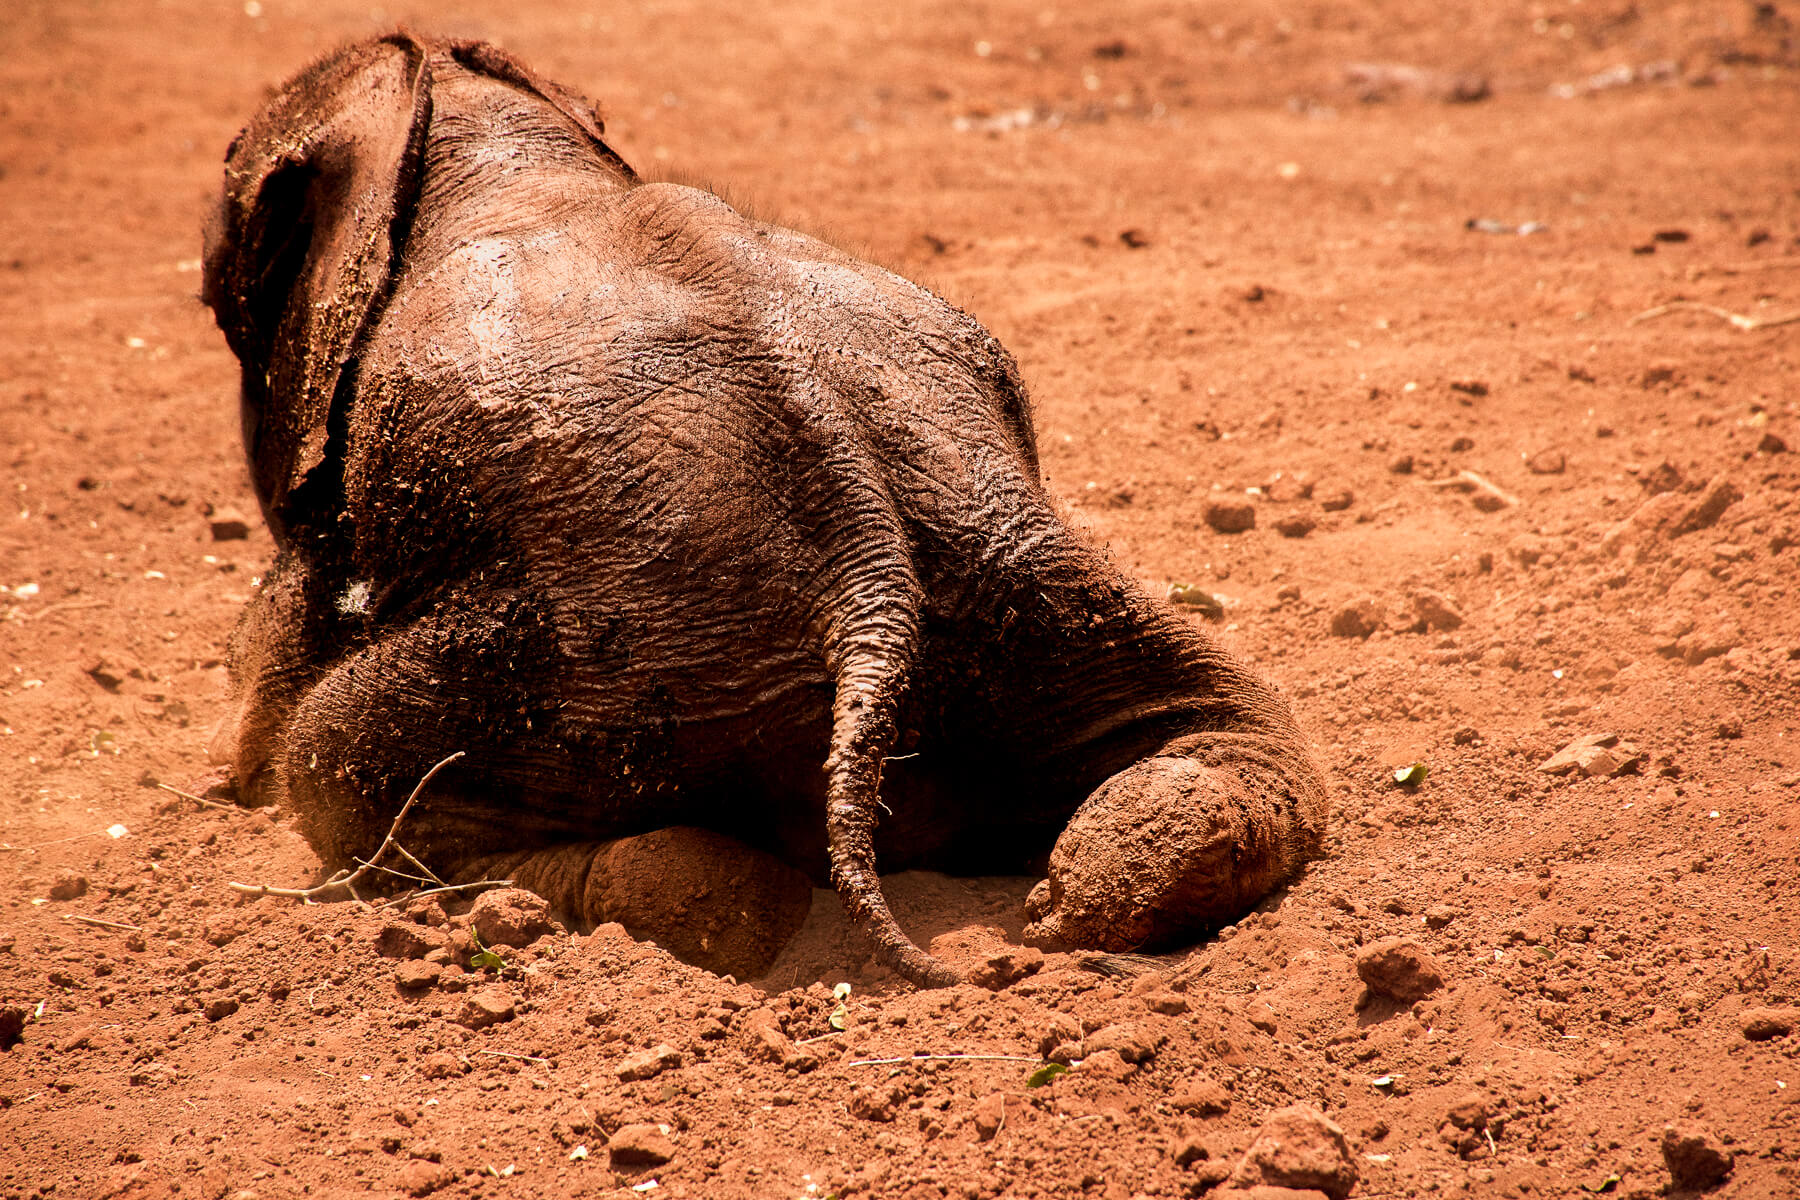 A young elephant laying in the first with its back legs stetted behind it